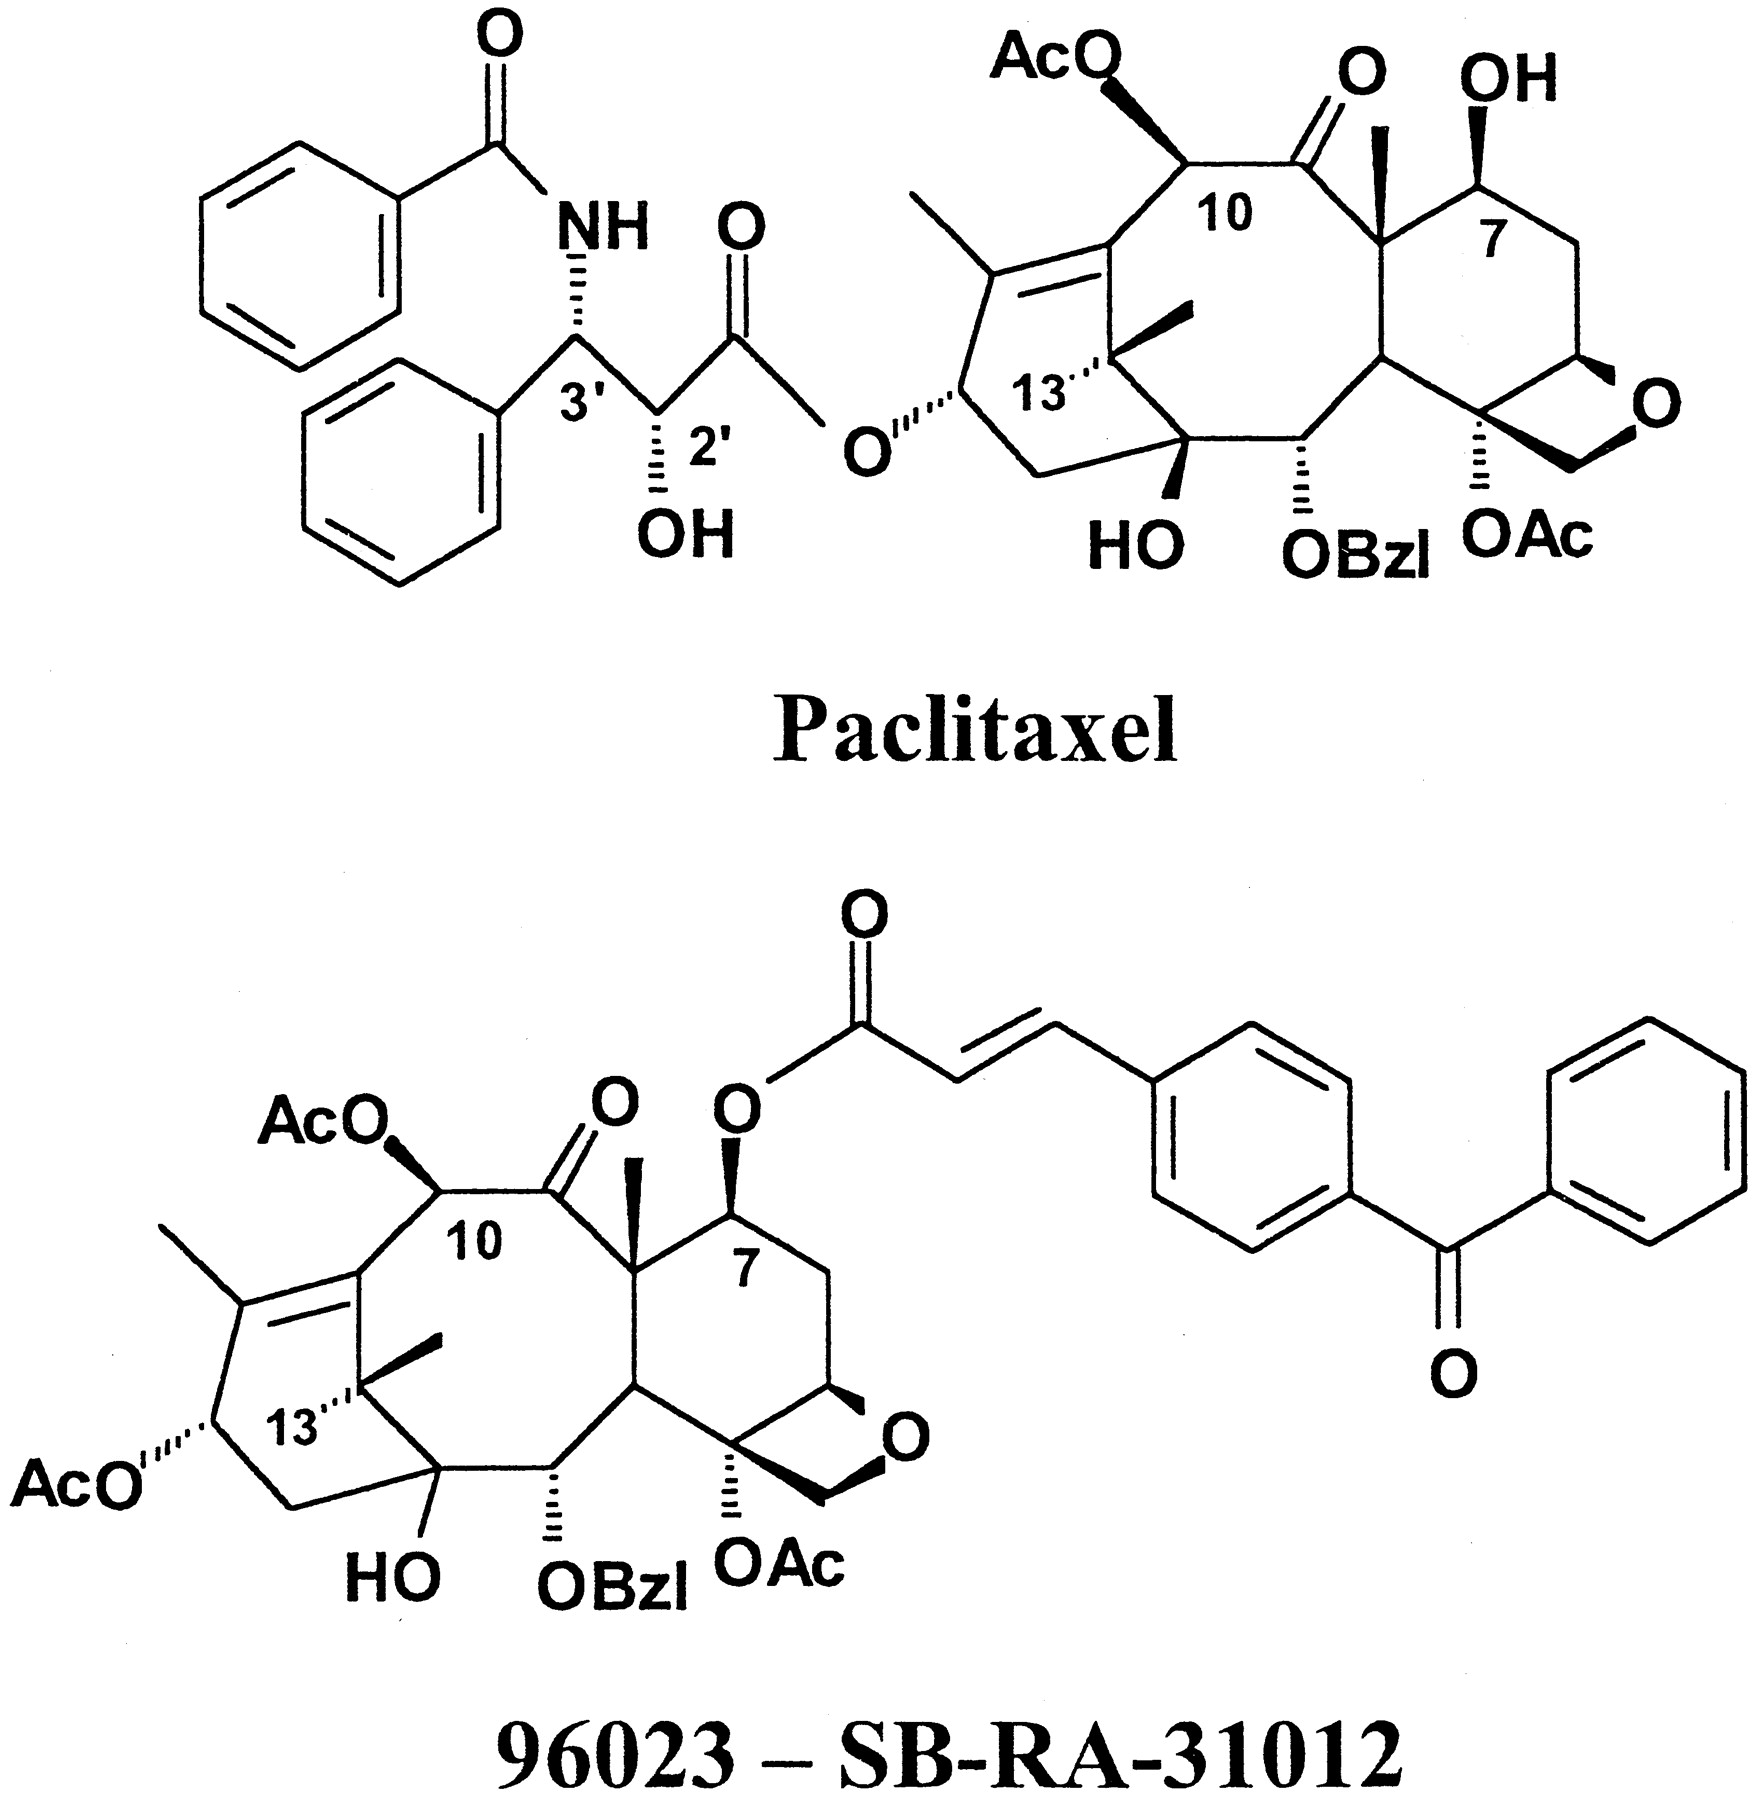 The Use Of A Novel Taxane-Based P-Glycoprotein Inhibitor